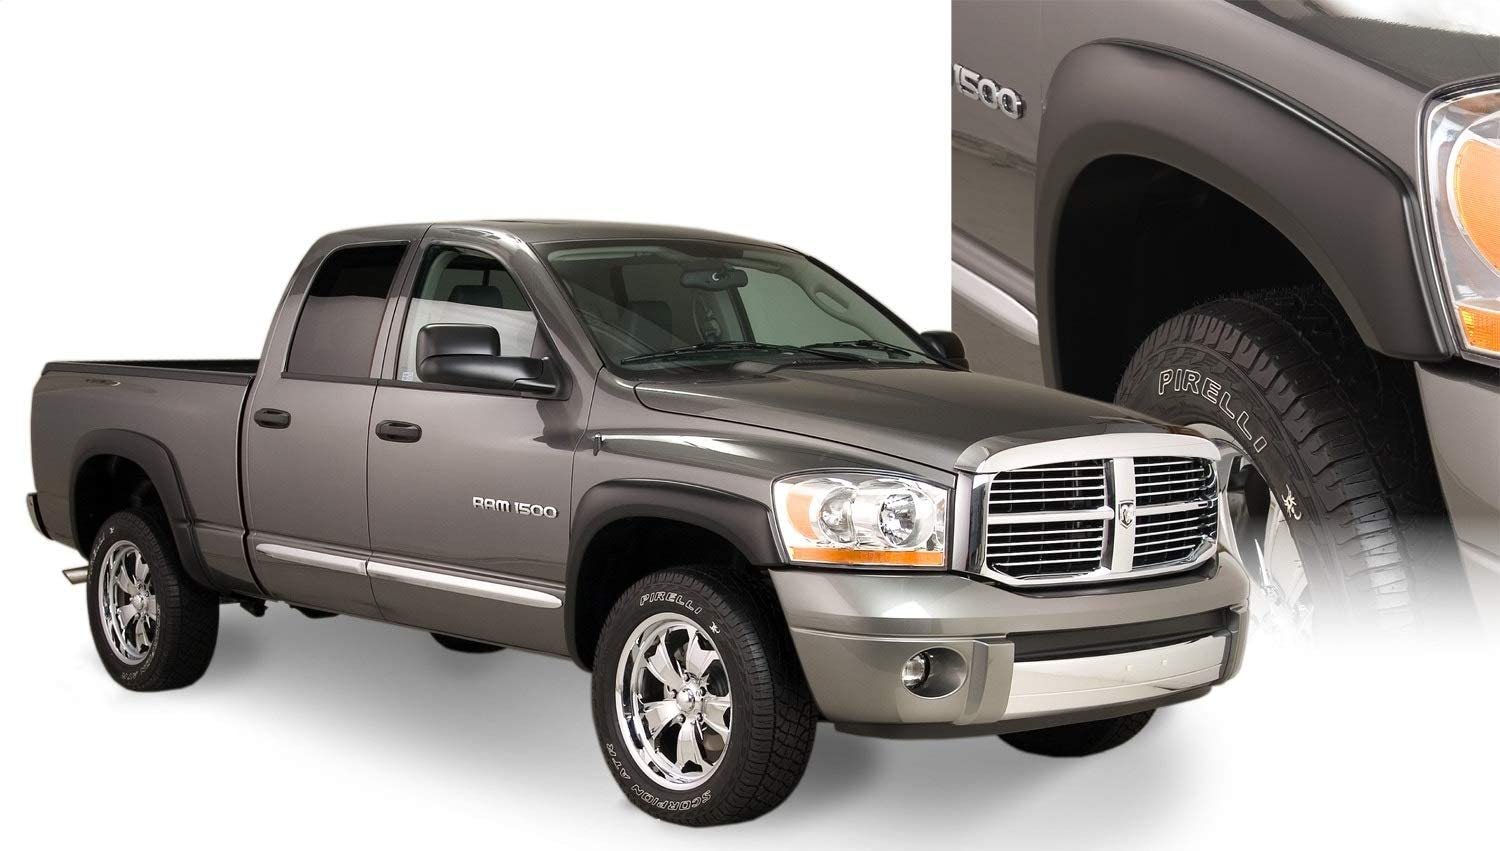 Compatible With/Replacement For Compatible With/Replacement For Bushwacker (B/W-ZPA-032) OE Style Fender Flares - Fits 3500 2010-2011